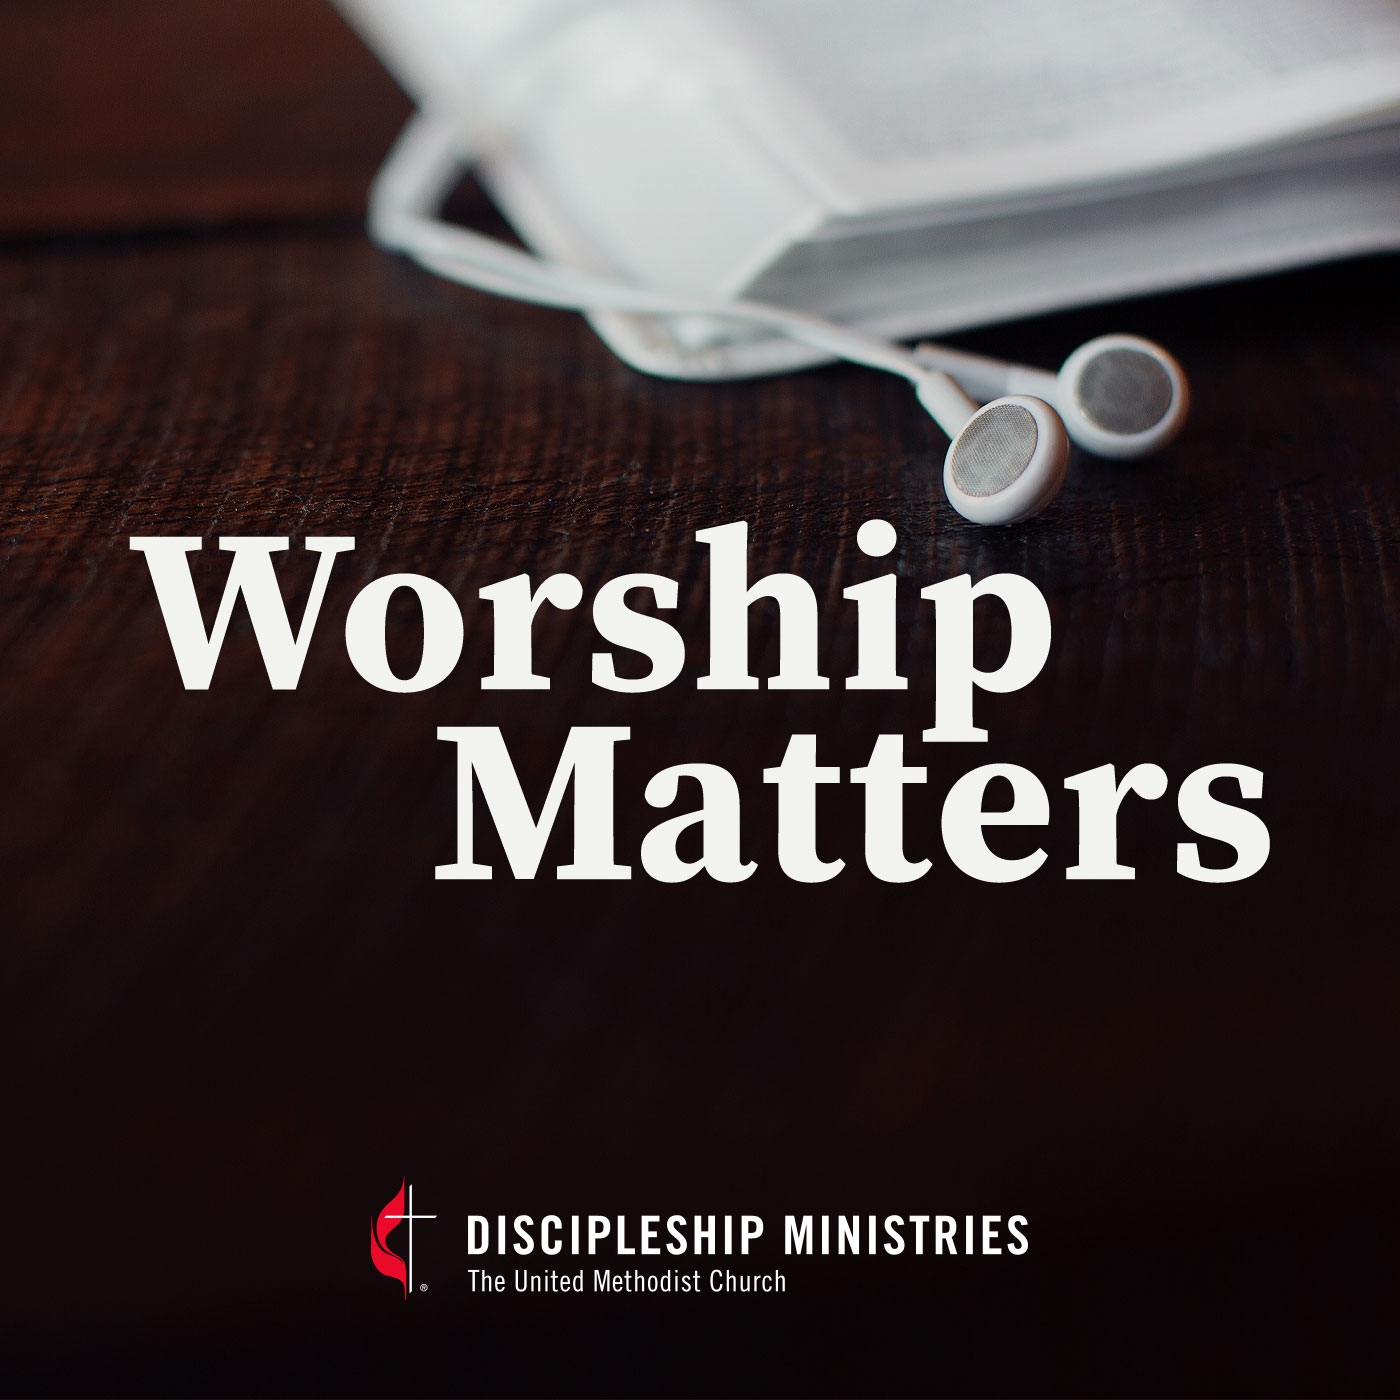 Discipleship Ministries | Worship Matters: Episode 01 - Epiphany  2020 Methodist Lectionary